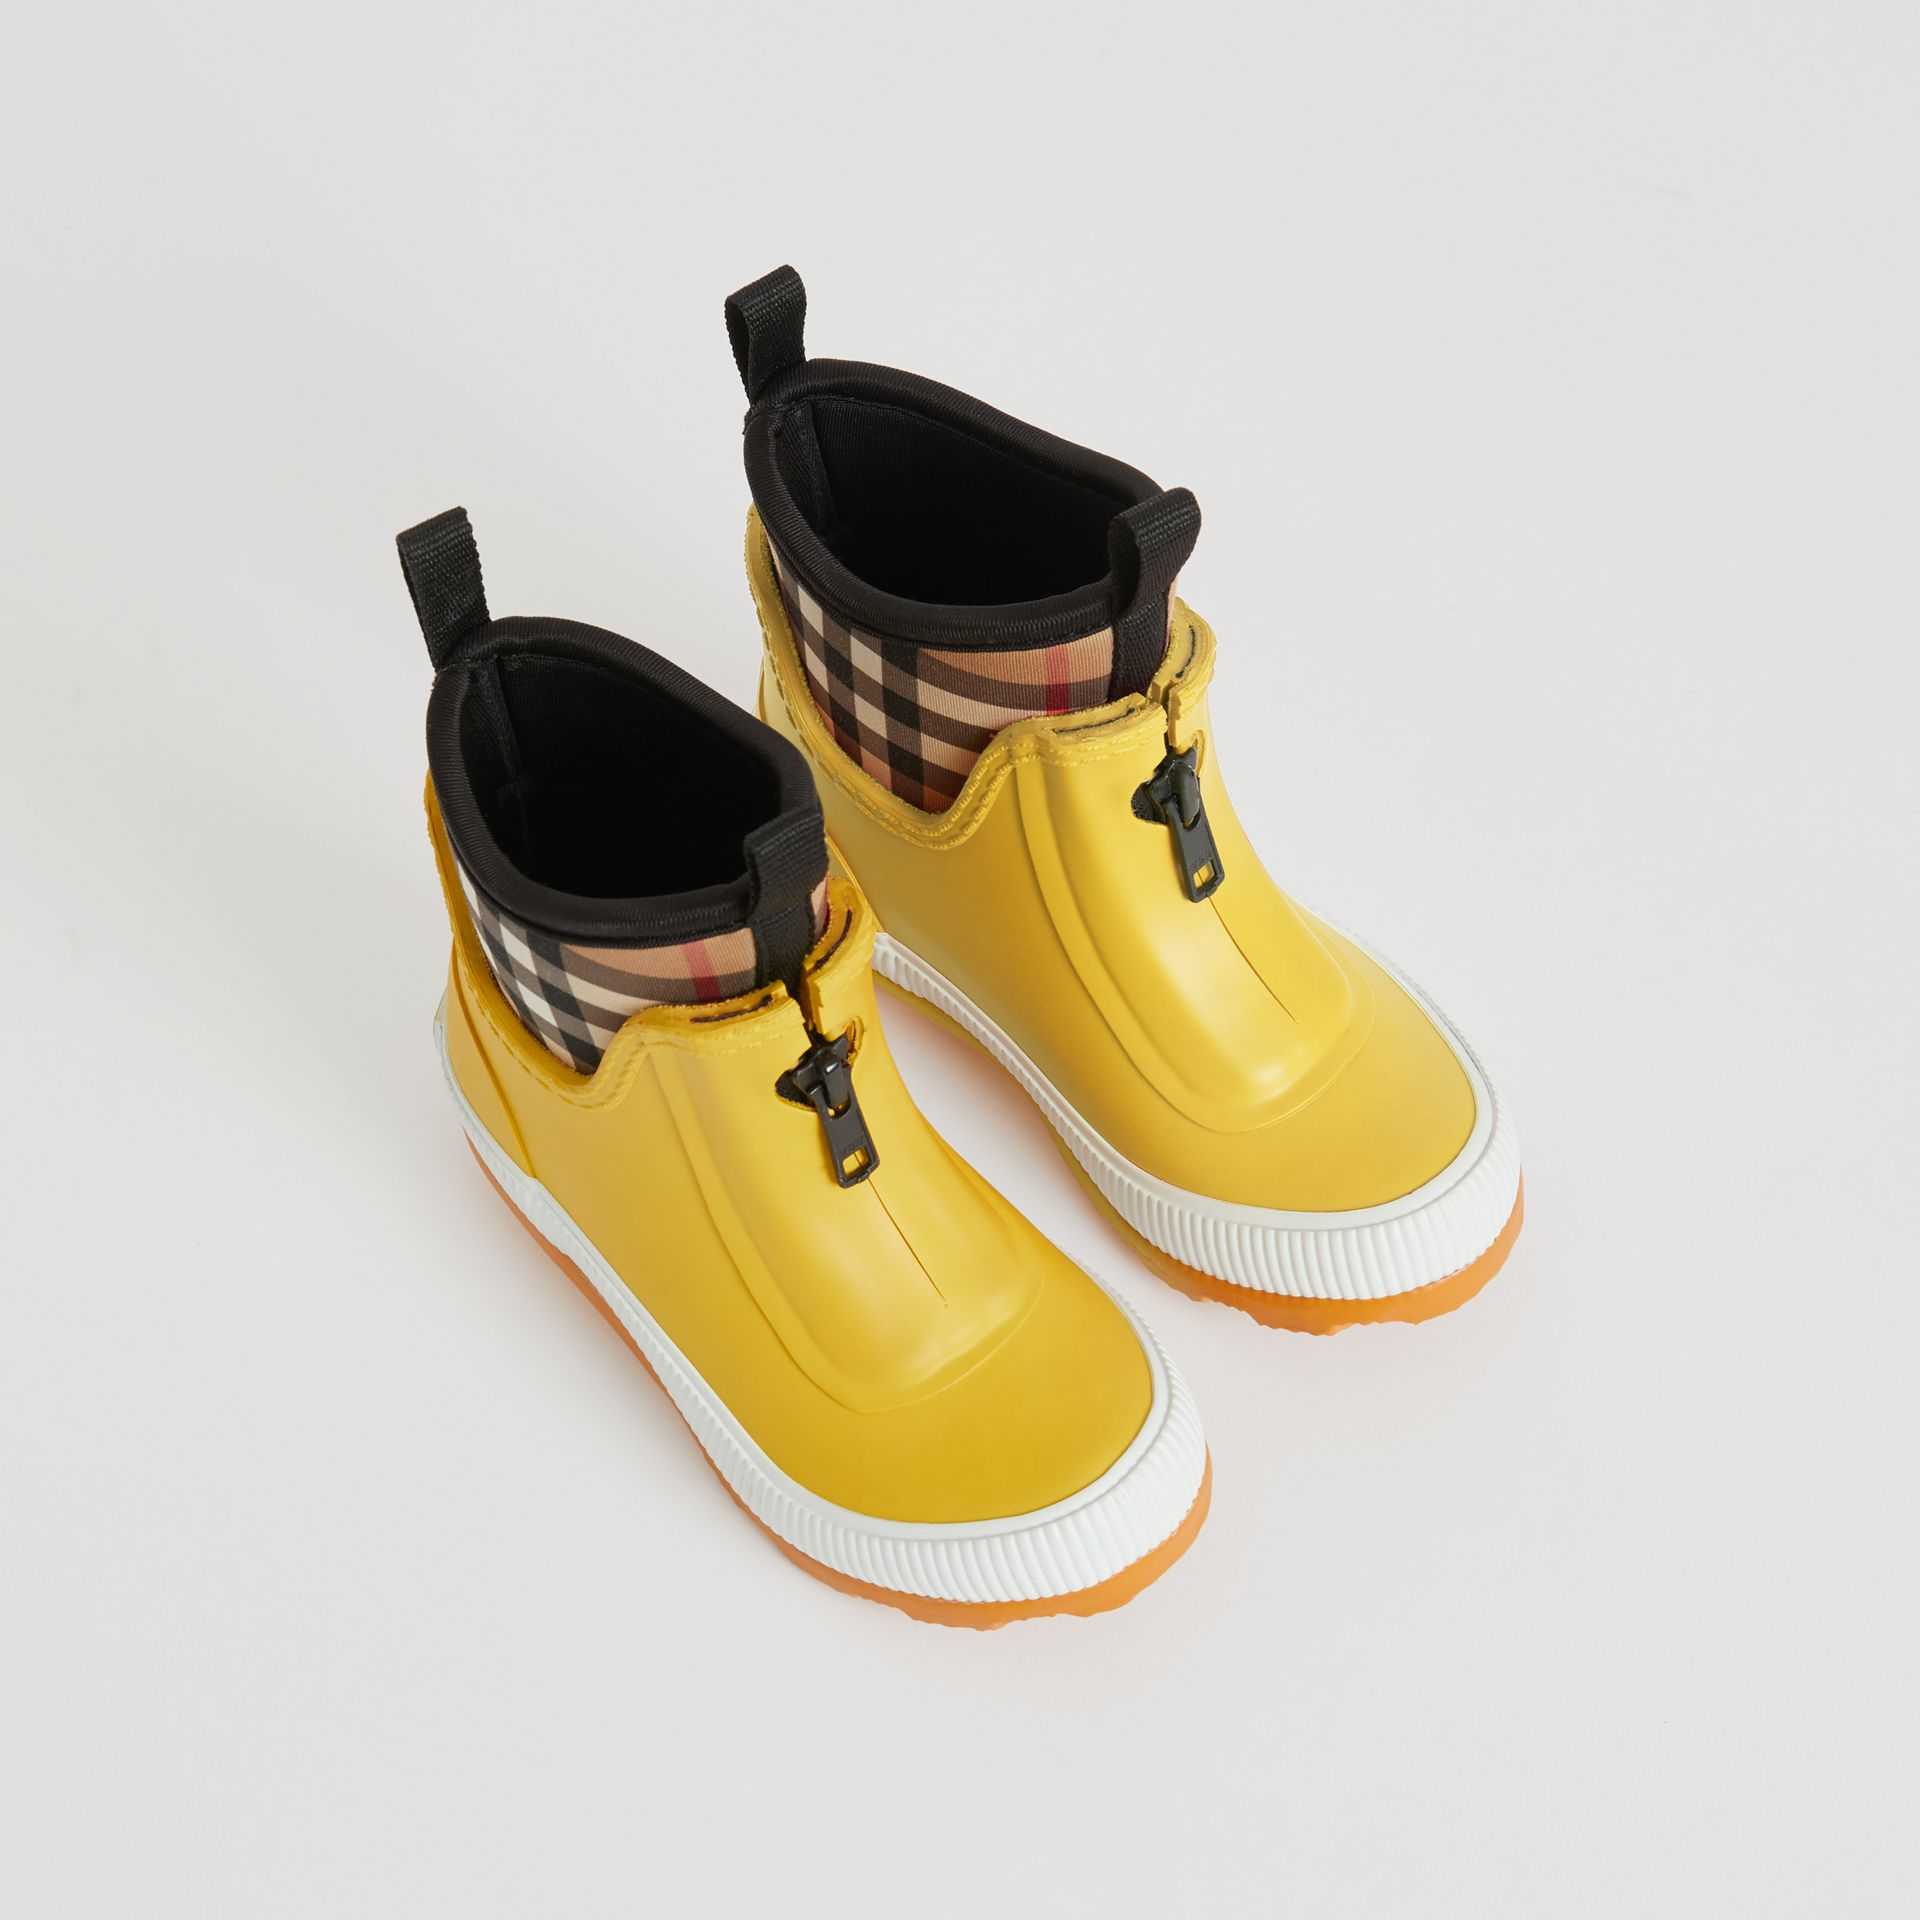 Vintage Check Neoprene and Rubber Rain Boots in Vibrant Lemon | Burberry Australia - gallery image 0